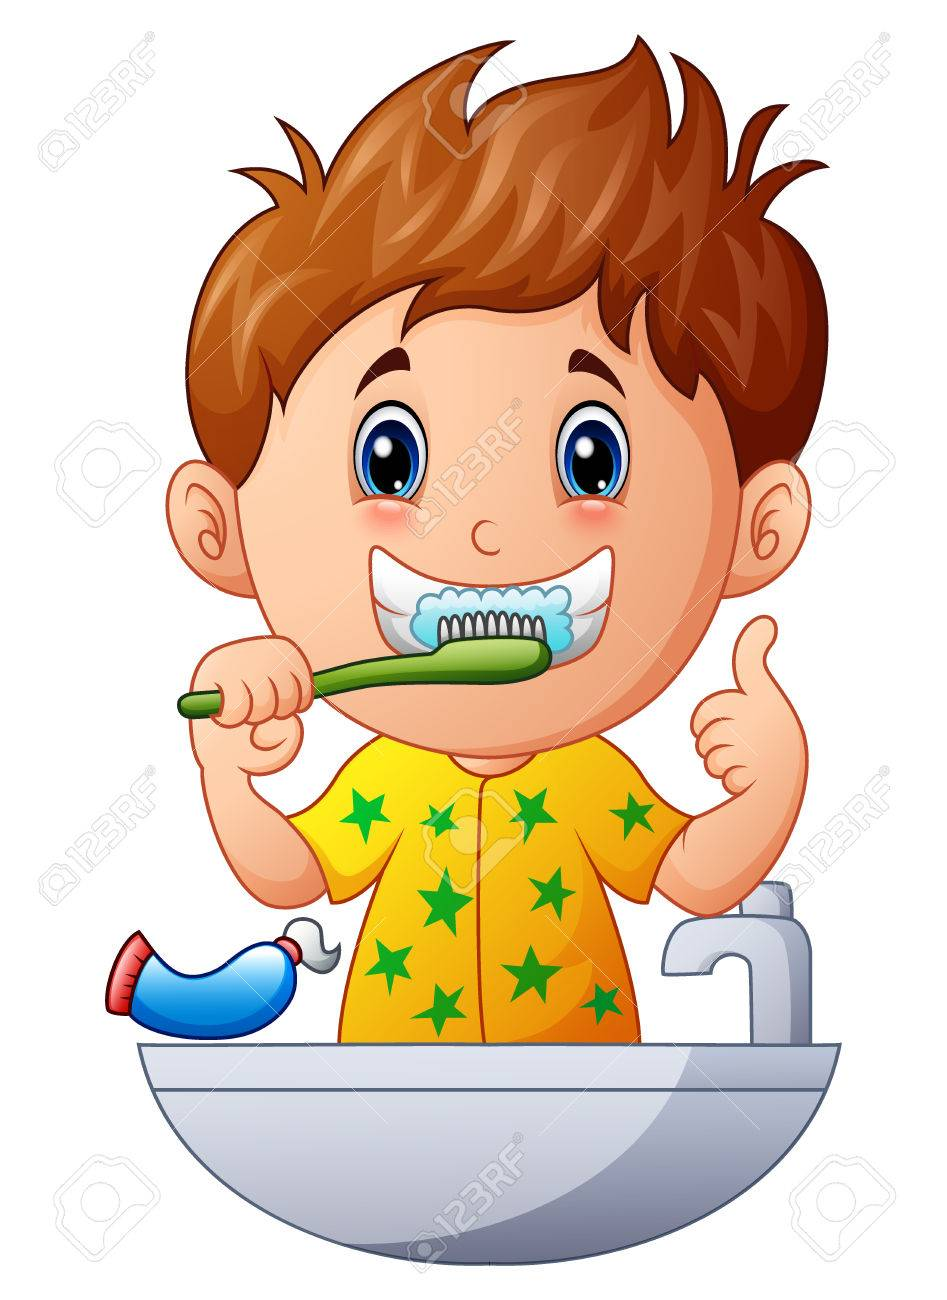 vector illustration of cute boy brushing teeth royalty free cliparts rh 123rf com child brushing teeth clipart brushing teeth clipart free